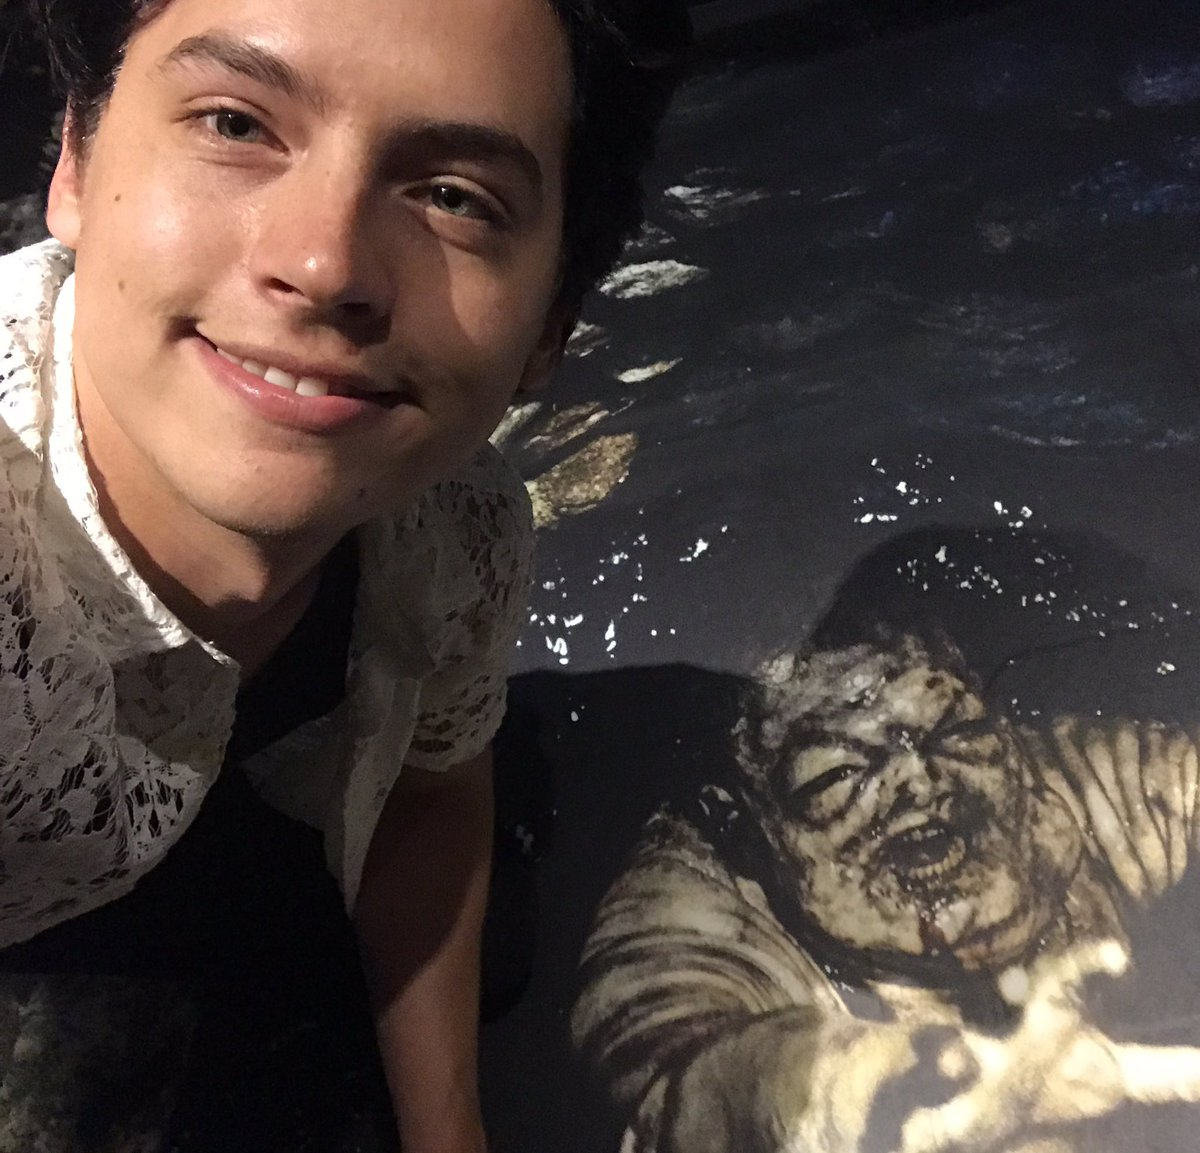 RT @colesprouse: Who's more dead inside, retweet if it's me. https://t.co/e4gczvuxeH